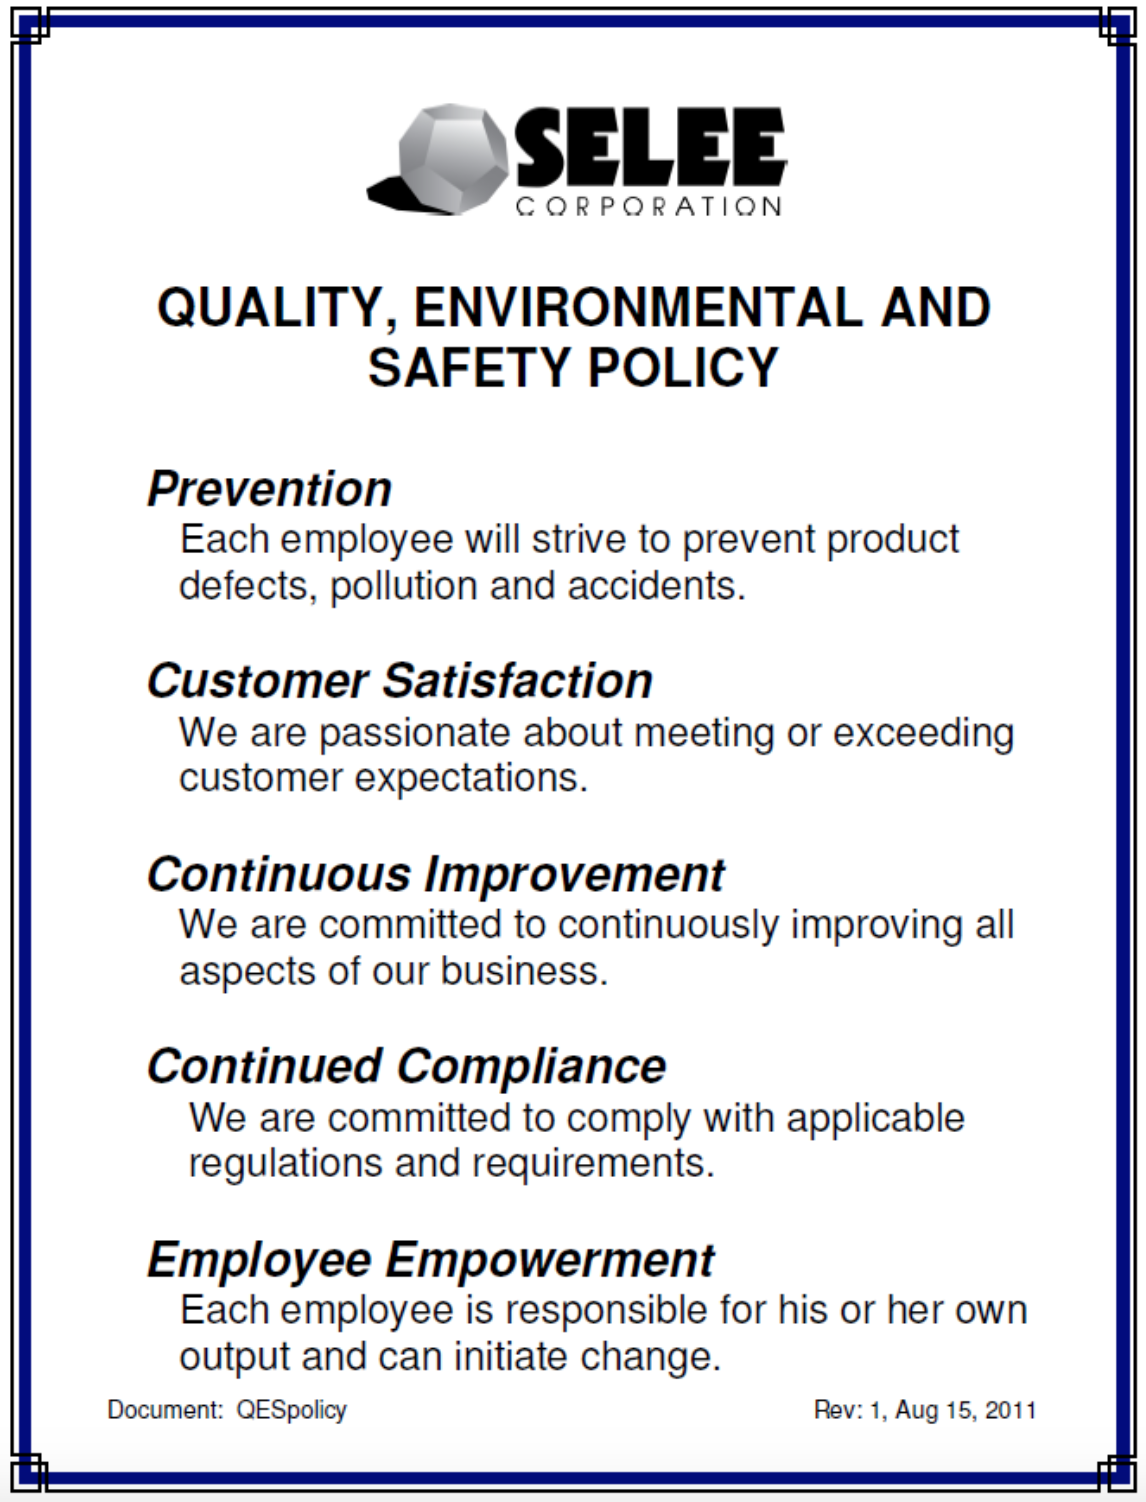 SELEE Quality, Environmental, and Safety Policy